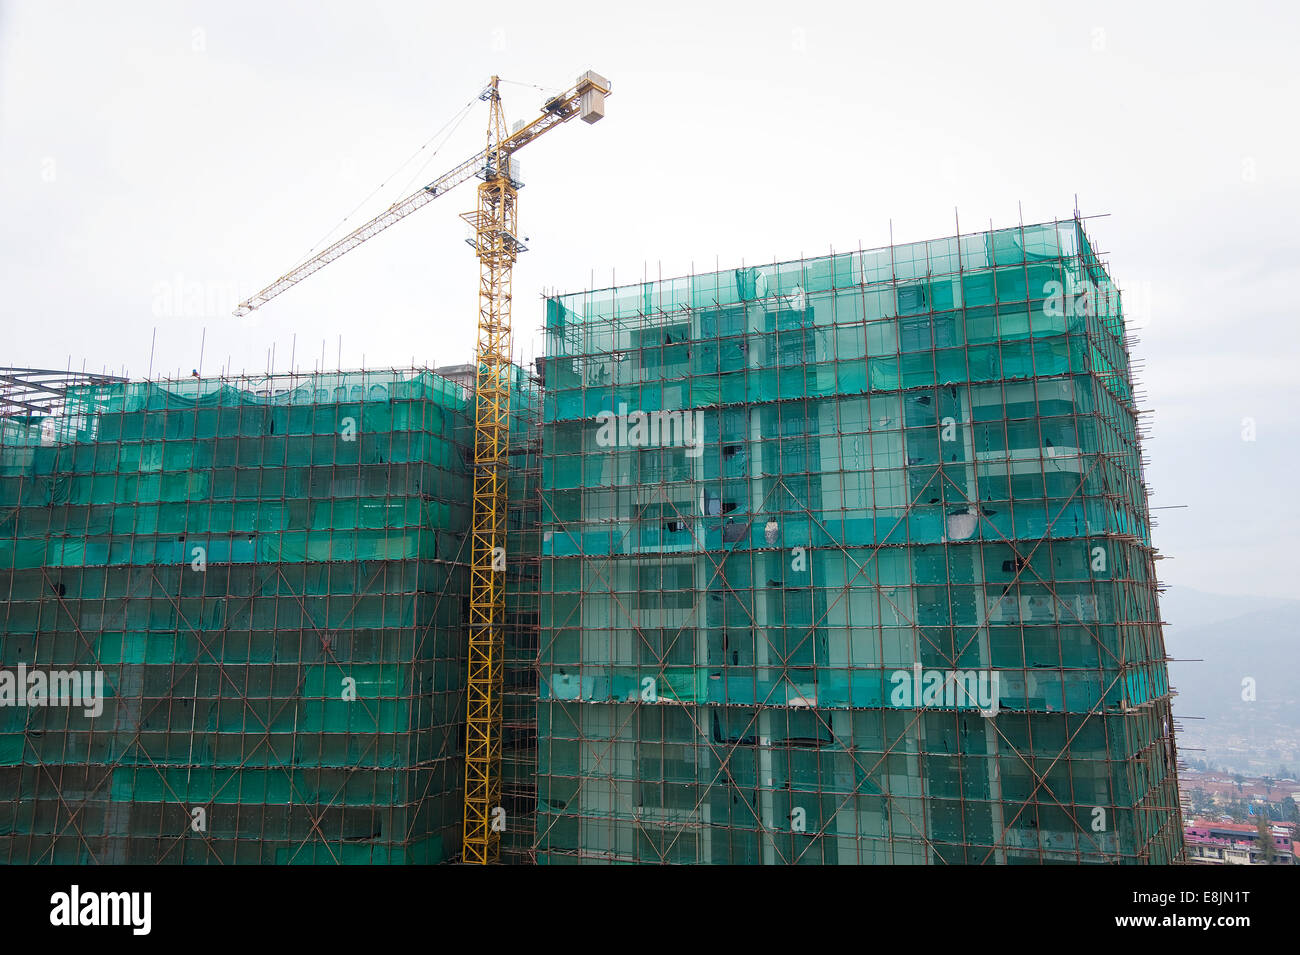 RWANDA, KIGALI: There are many construction sites in the capital city. - Stock Image